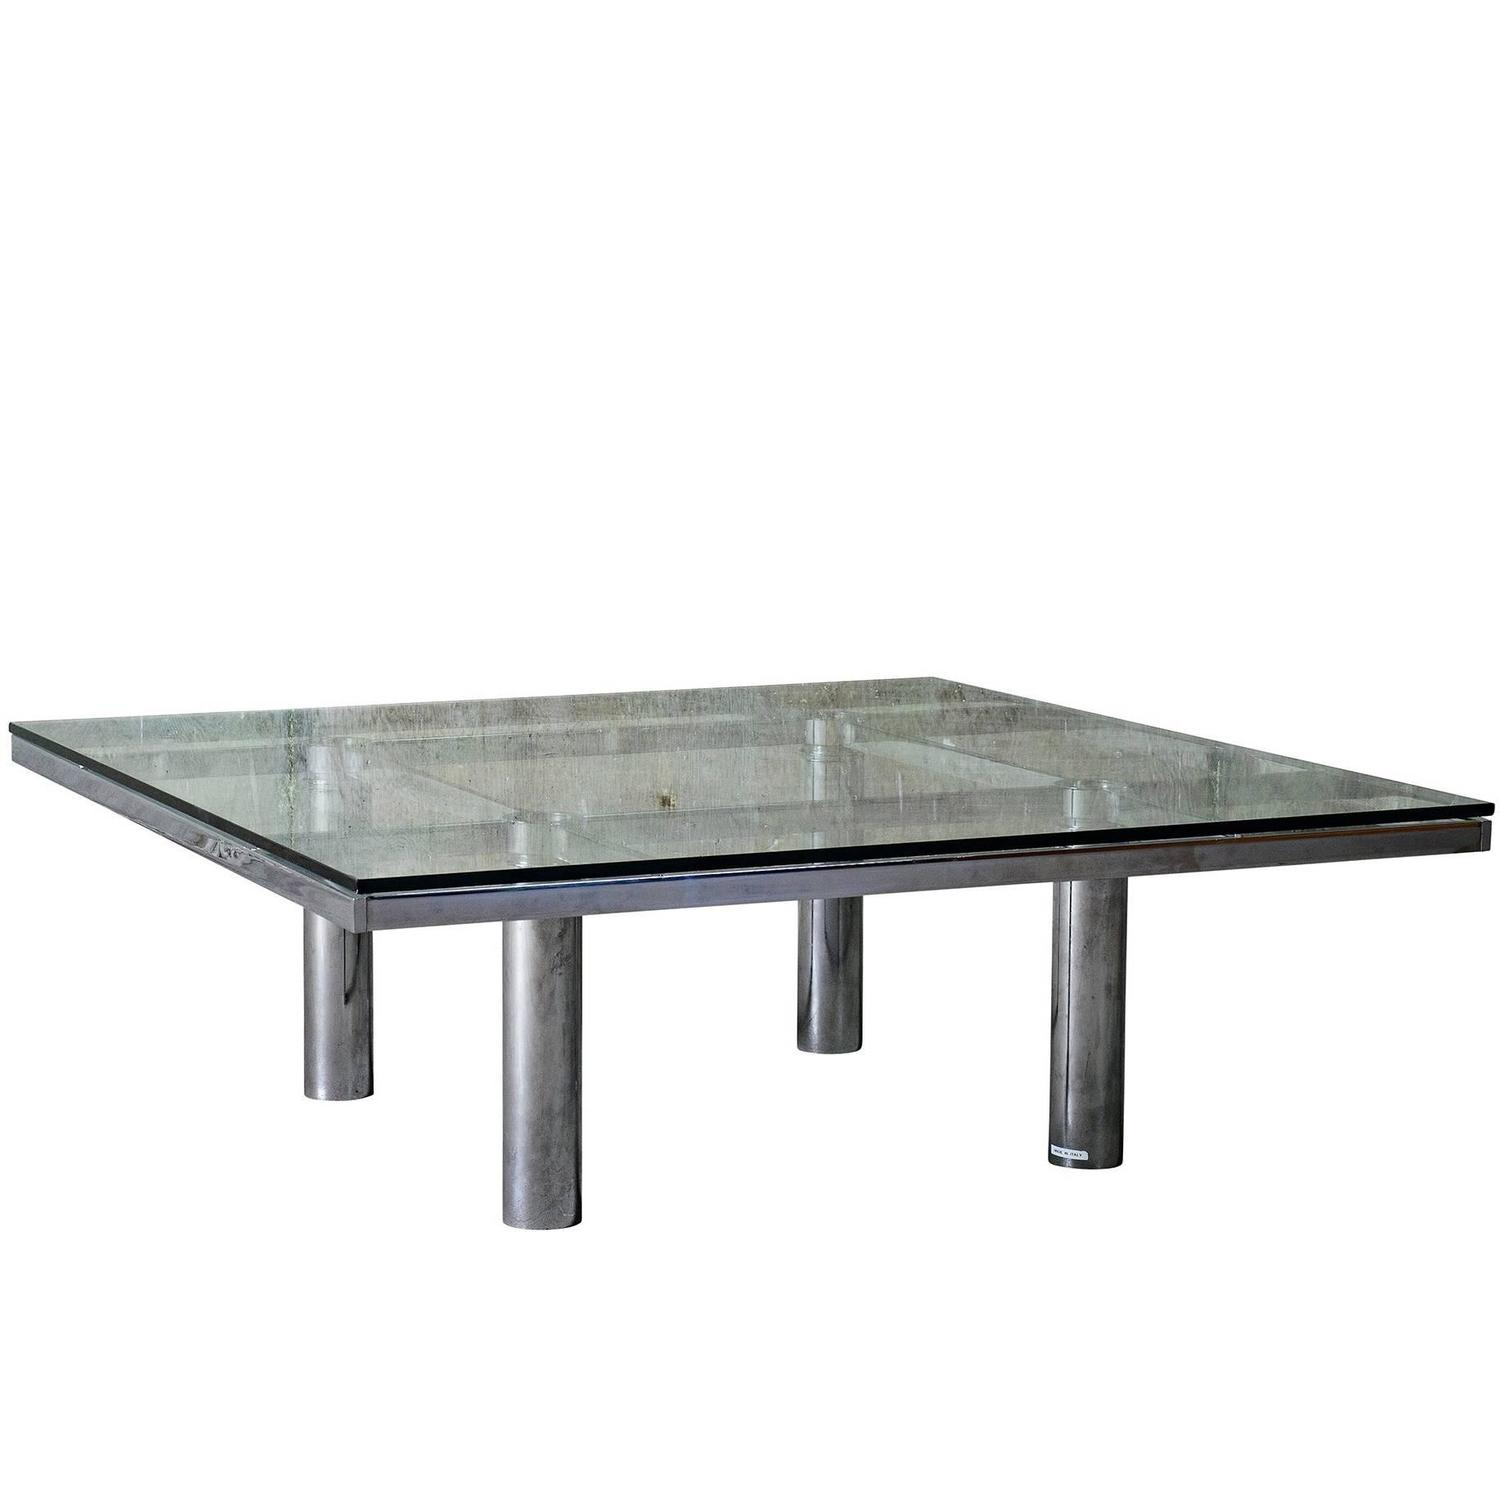 Tobia Scarpa U0026quot;Andreu0026quot; Coffee Table, Chrome Plated Steel And Glass  For